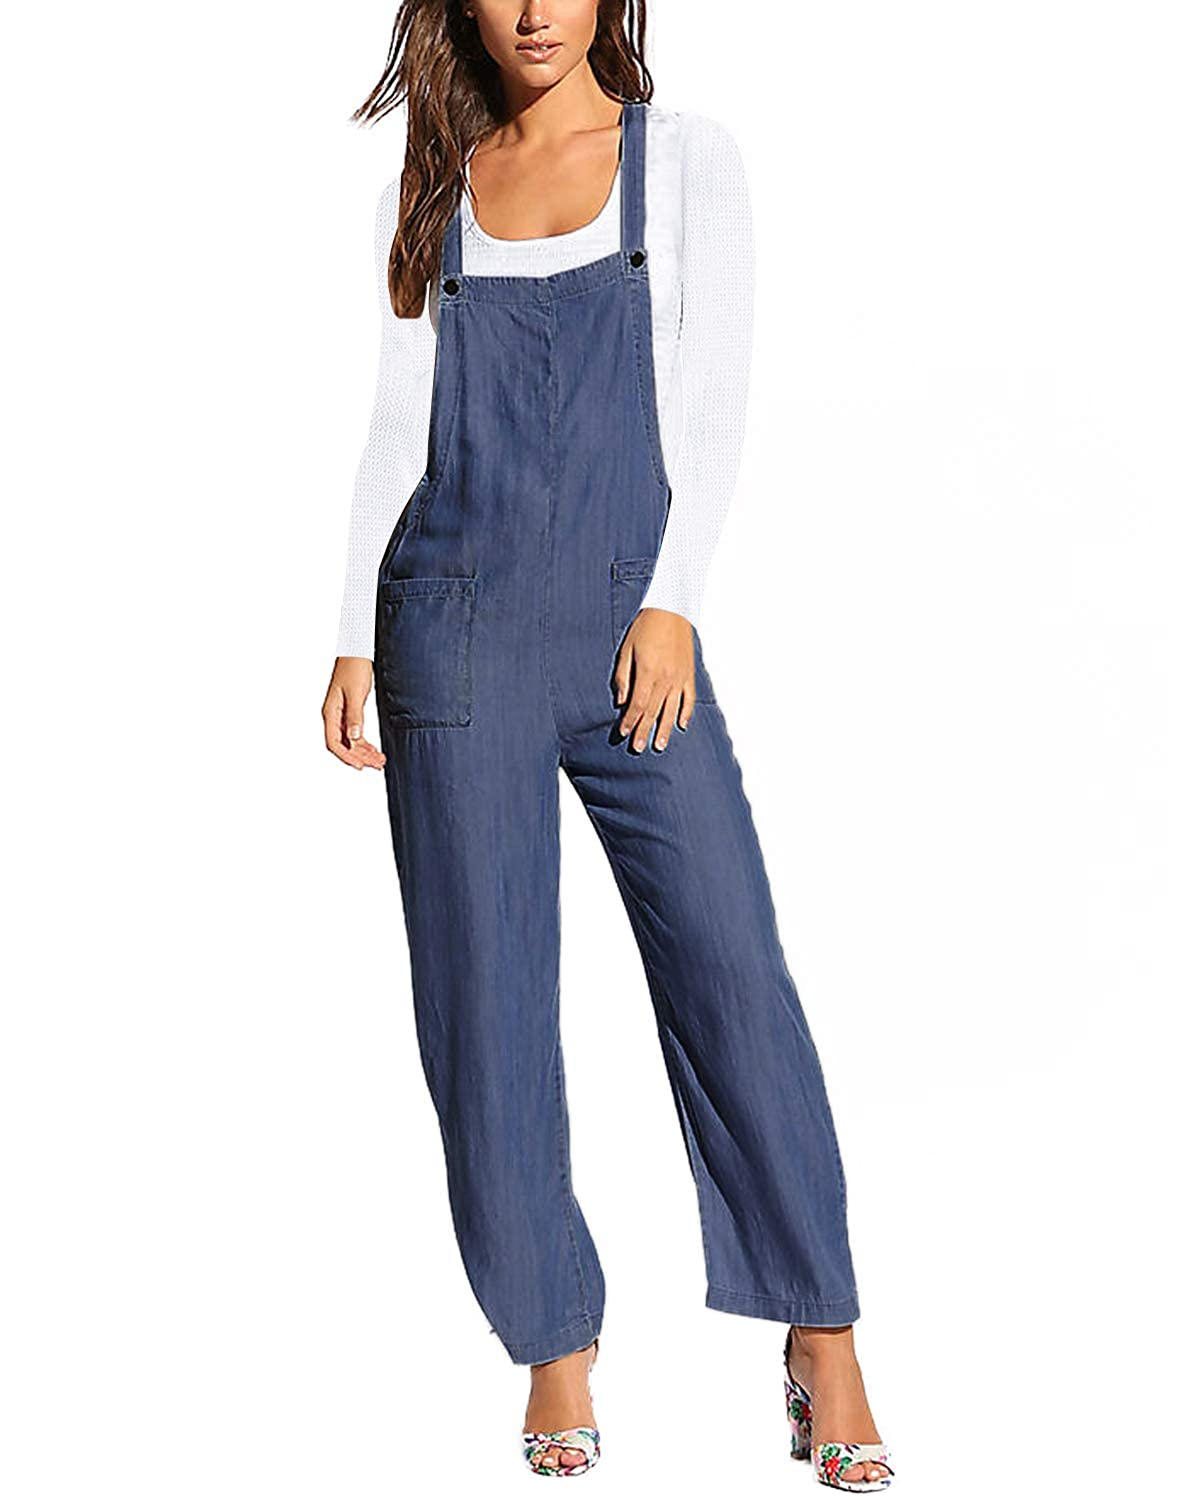 Cottagecore Clothing, Soft Aesthetic ACHIOOWA Bib Overalls Denim Jumpsuits Front Pocket Rompers Strappy Pants for Women Casual $25.99 AT vintagedancer.com